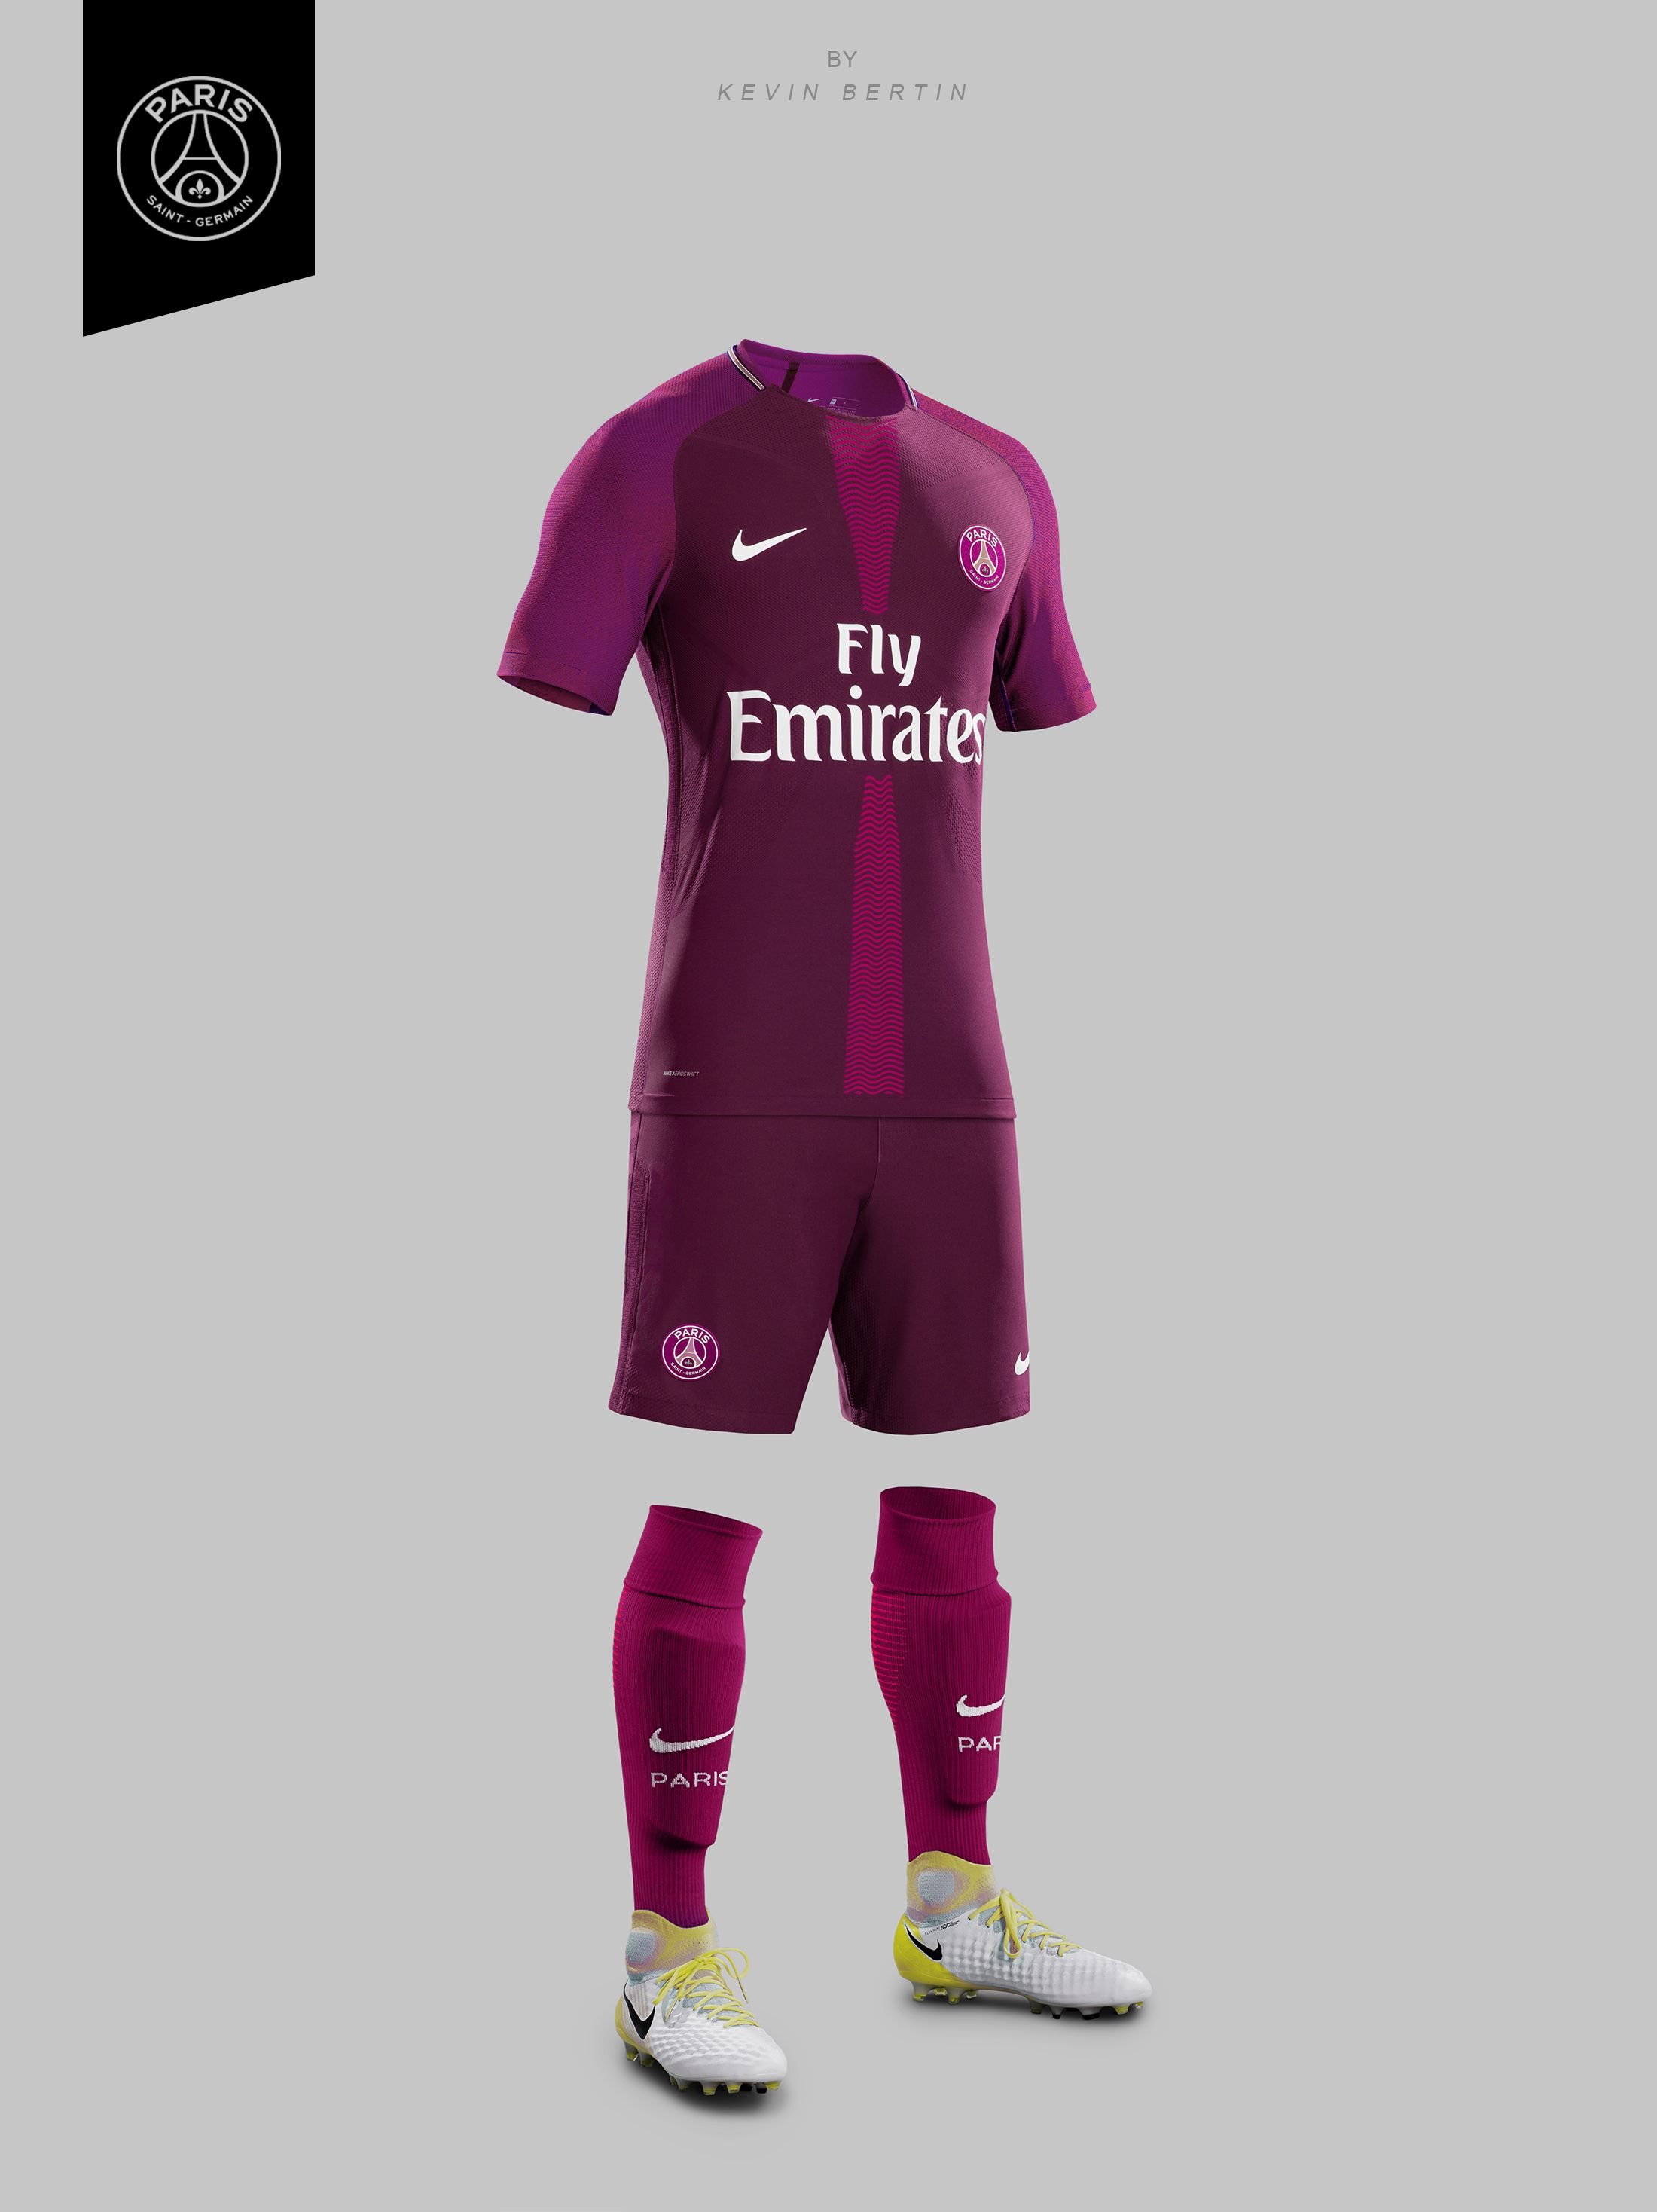 PSG Concept Design by Kevin Bertin Jersey Maillot 2018-2019 Kit away Paris  Saint-Germain 939b2d7661f21